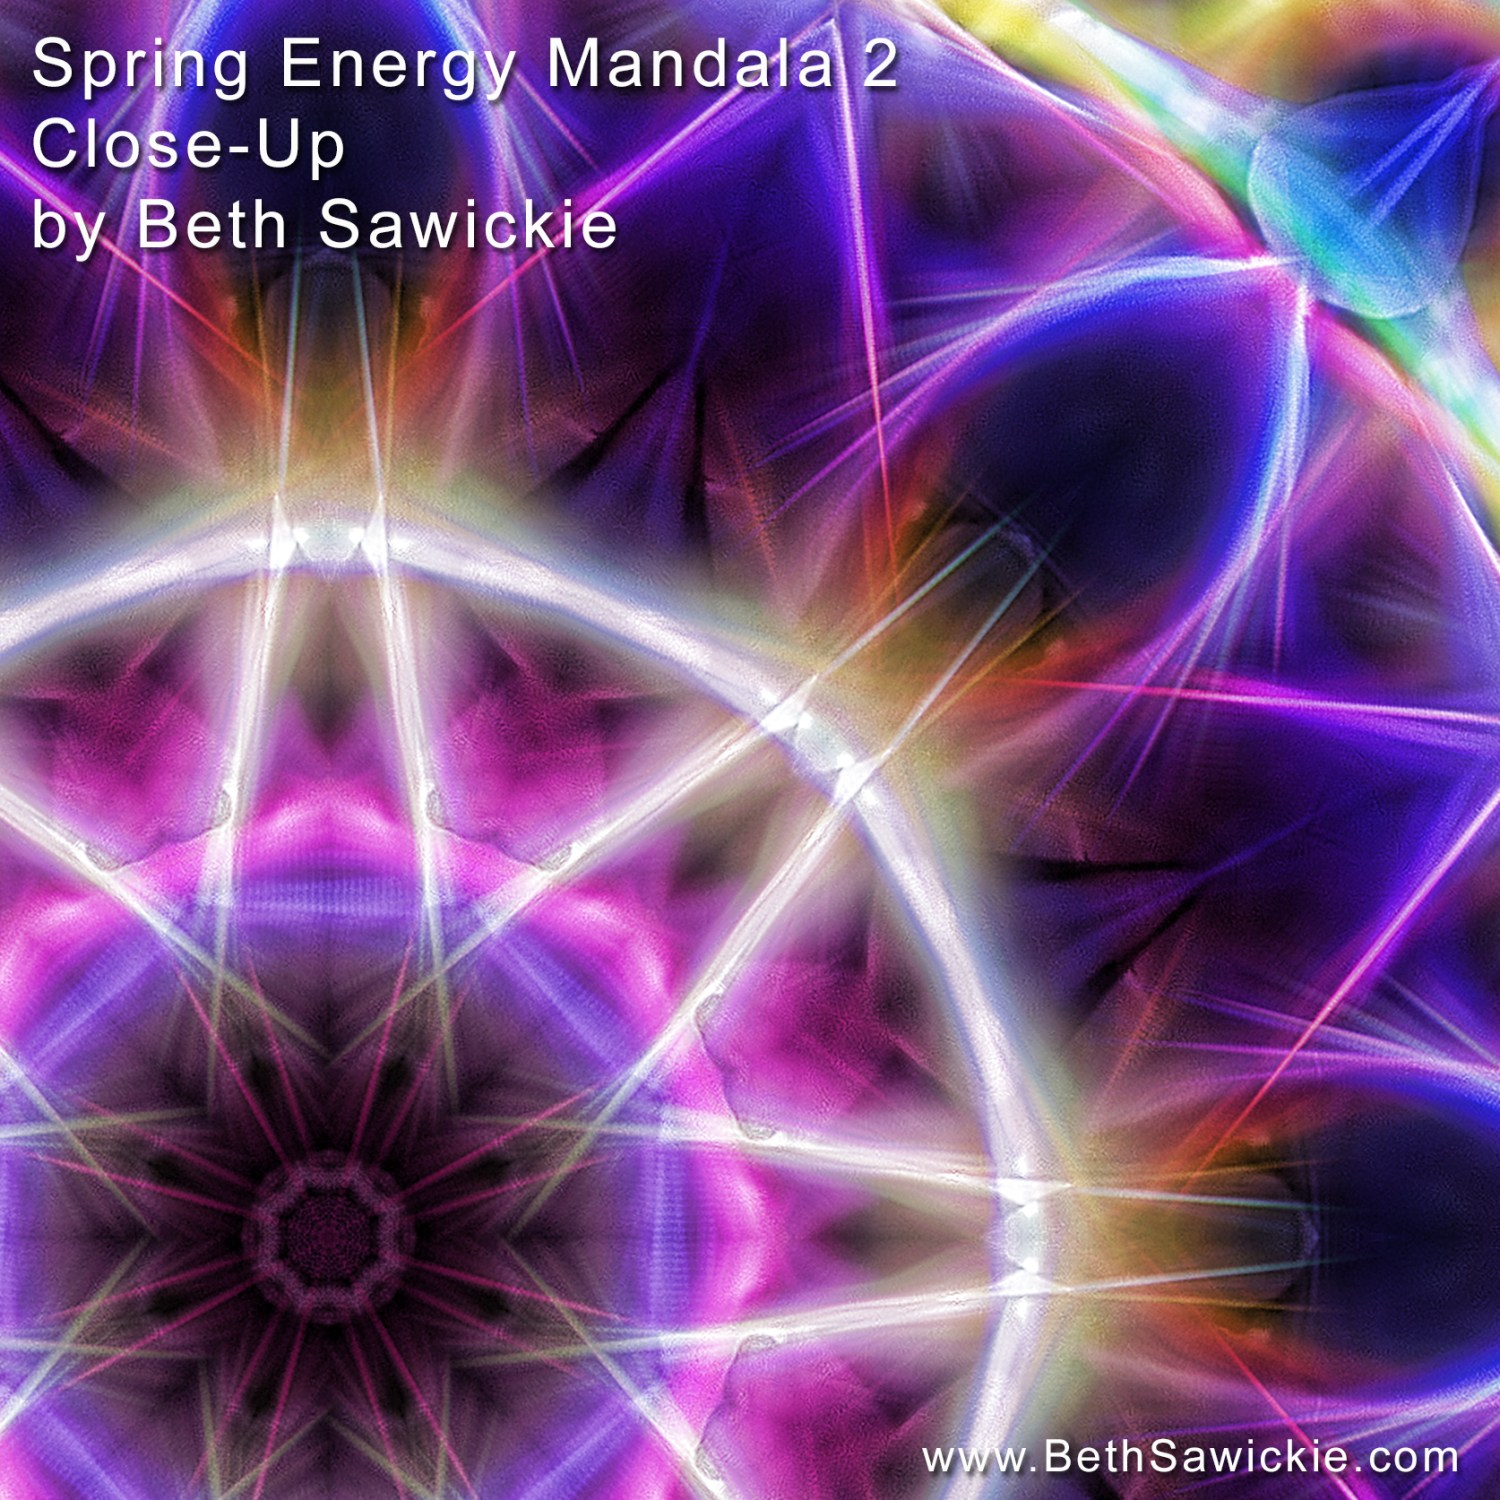 Spring Energy Mandala 2 Close-Up by Beth Sawickie